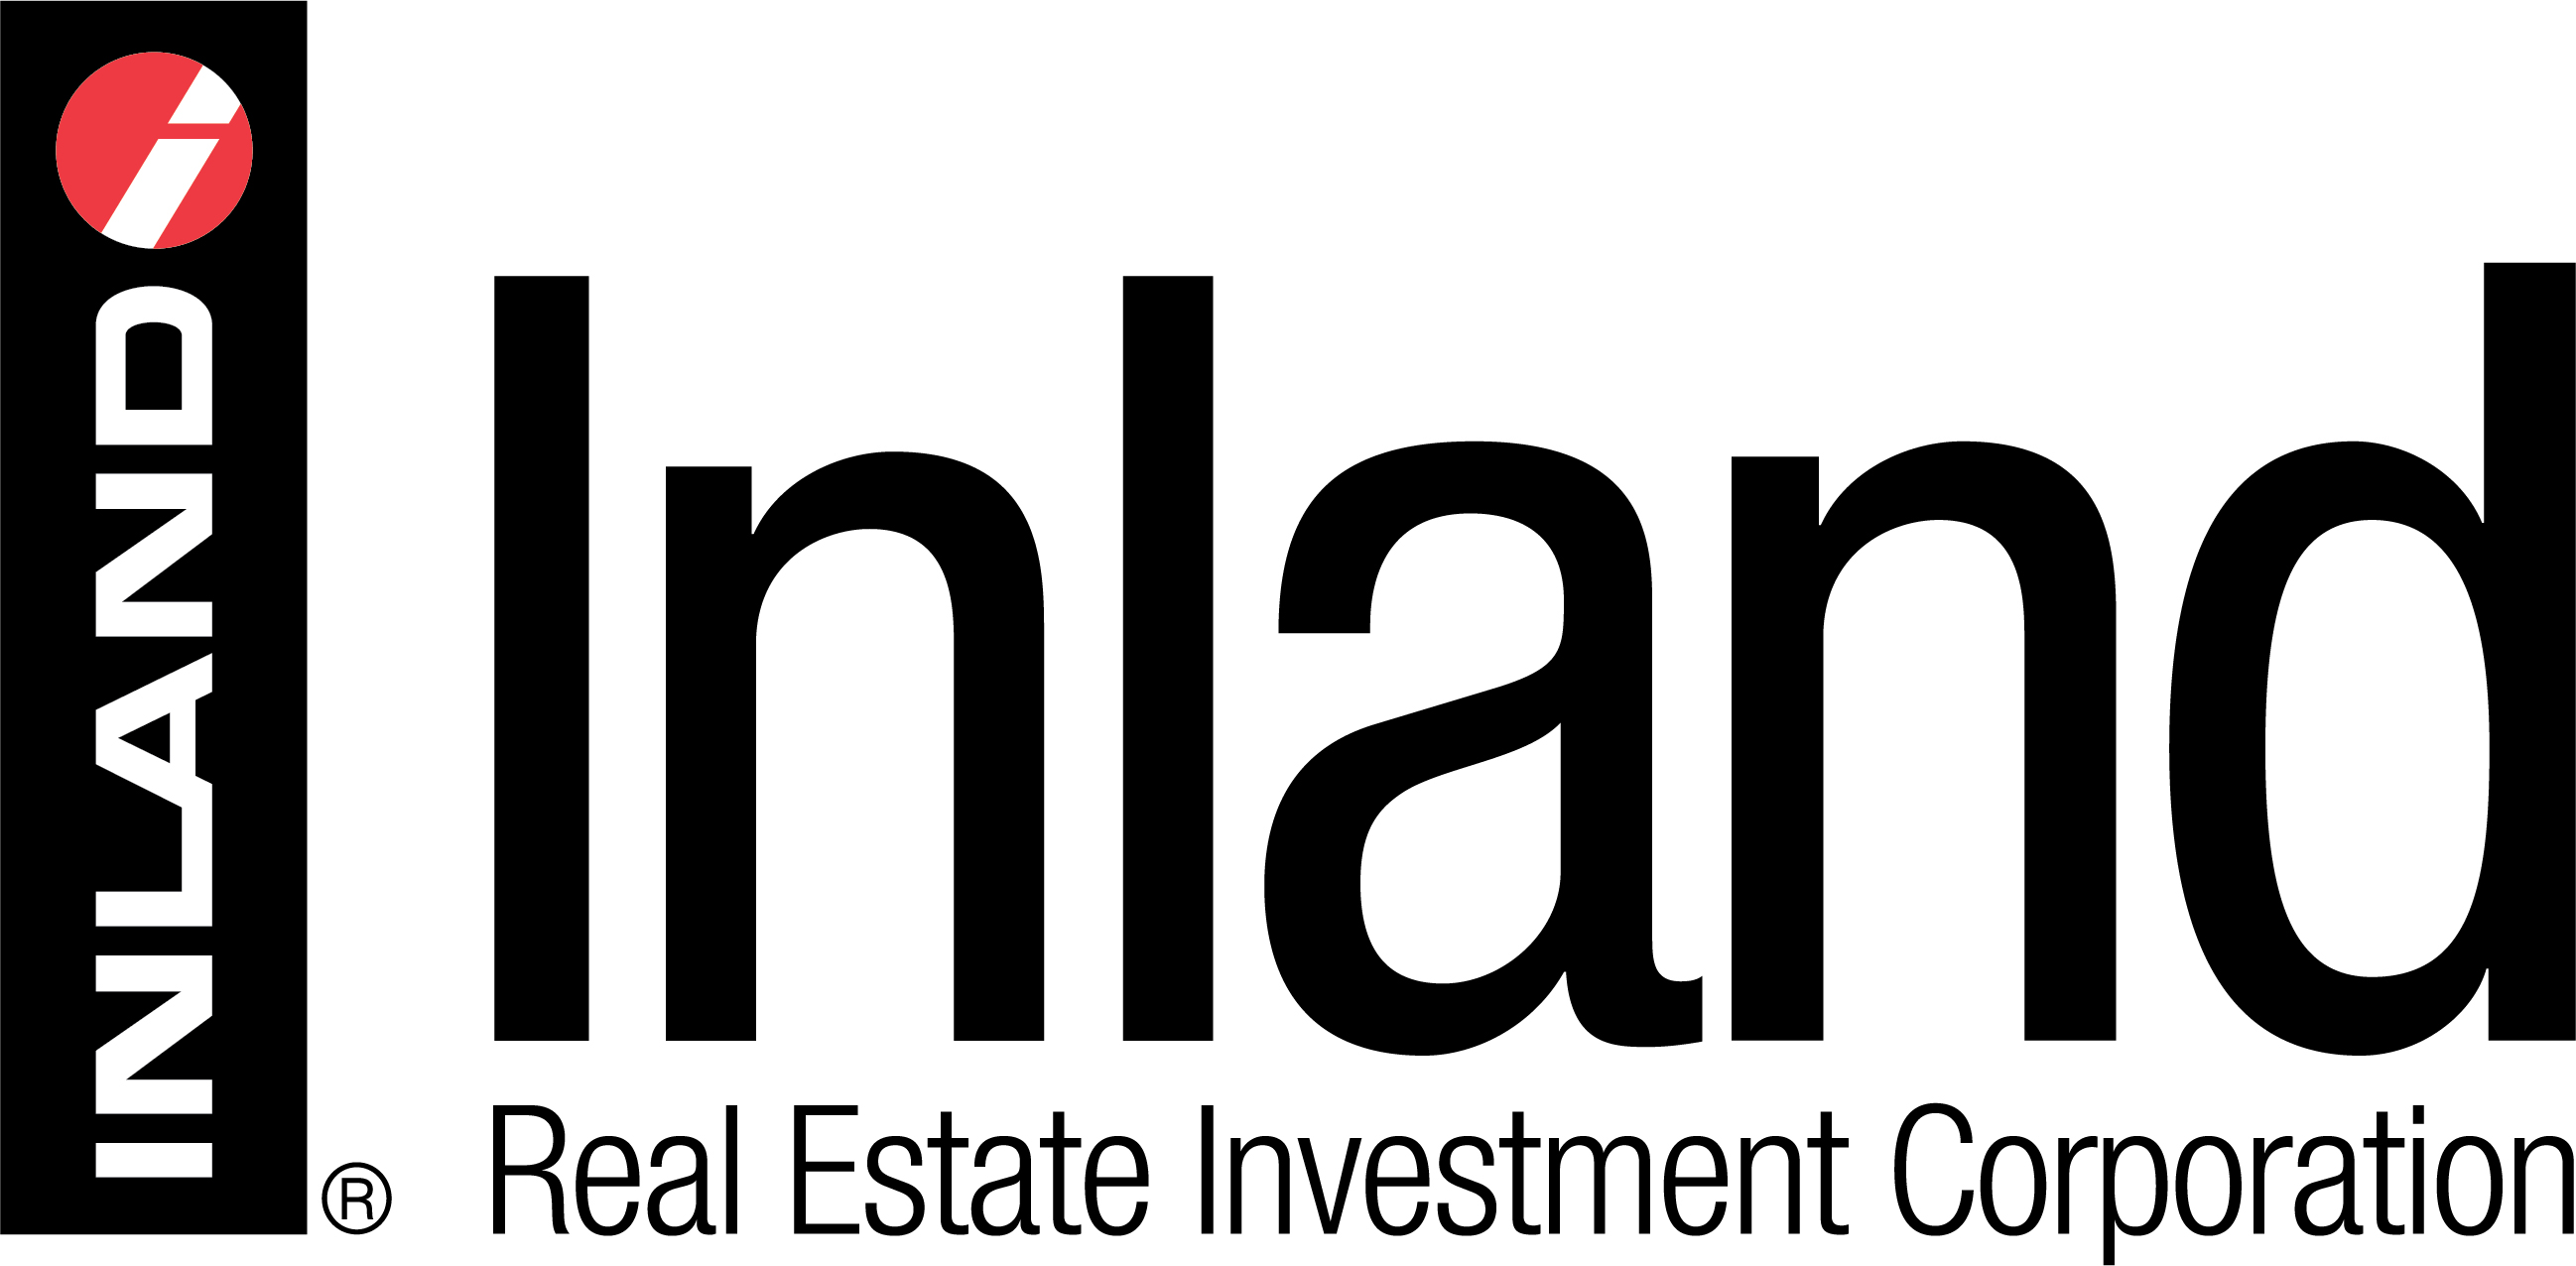 Inland Real Estate Investment Corporation logo